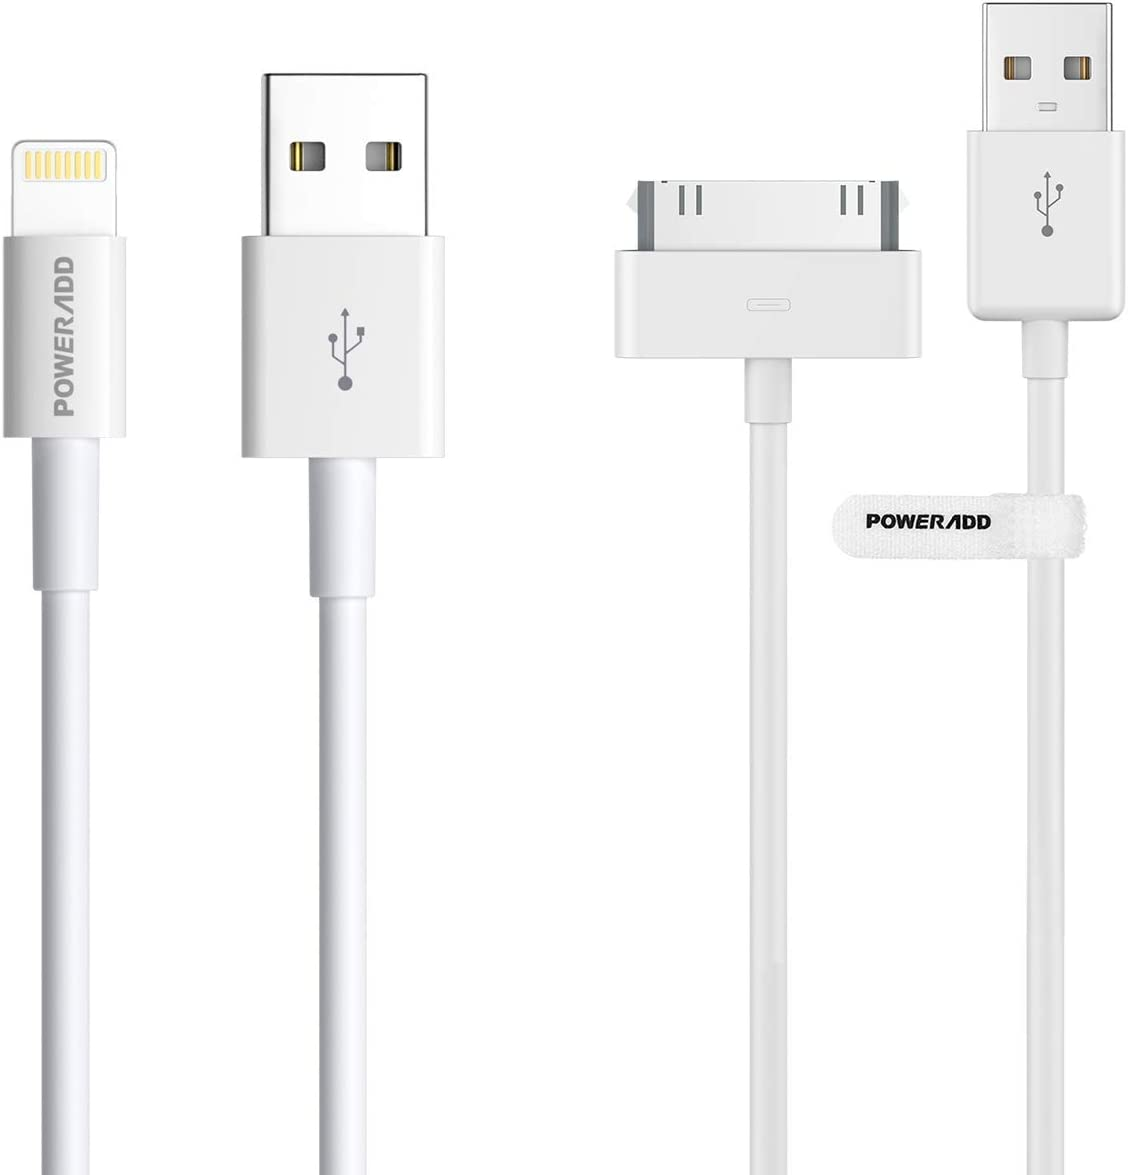 POWERADD Apple Certified iPhone 4 30 pins Cable and Lightning Cable